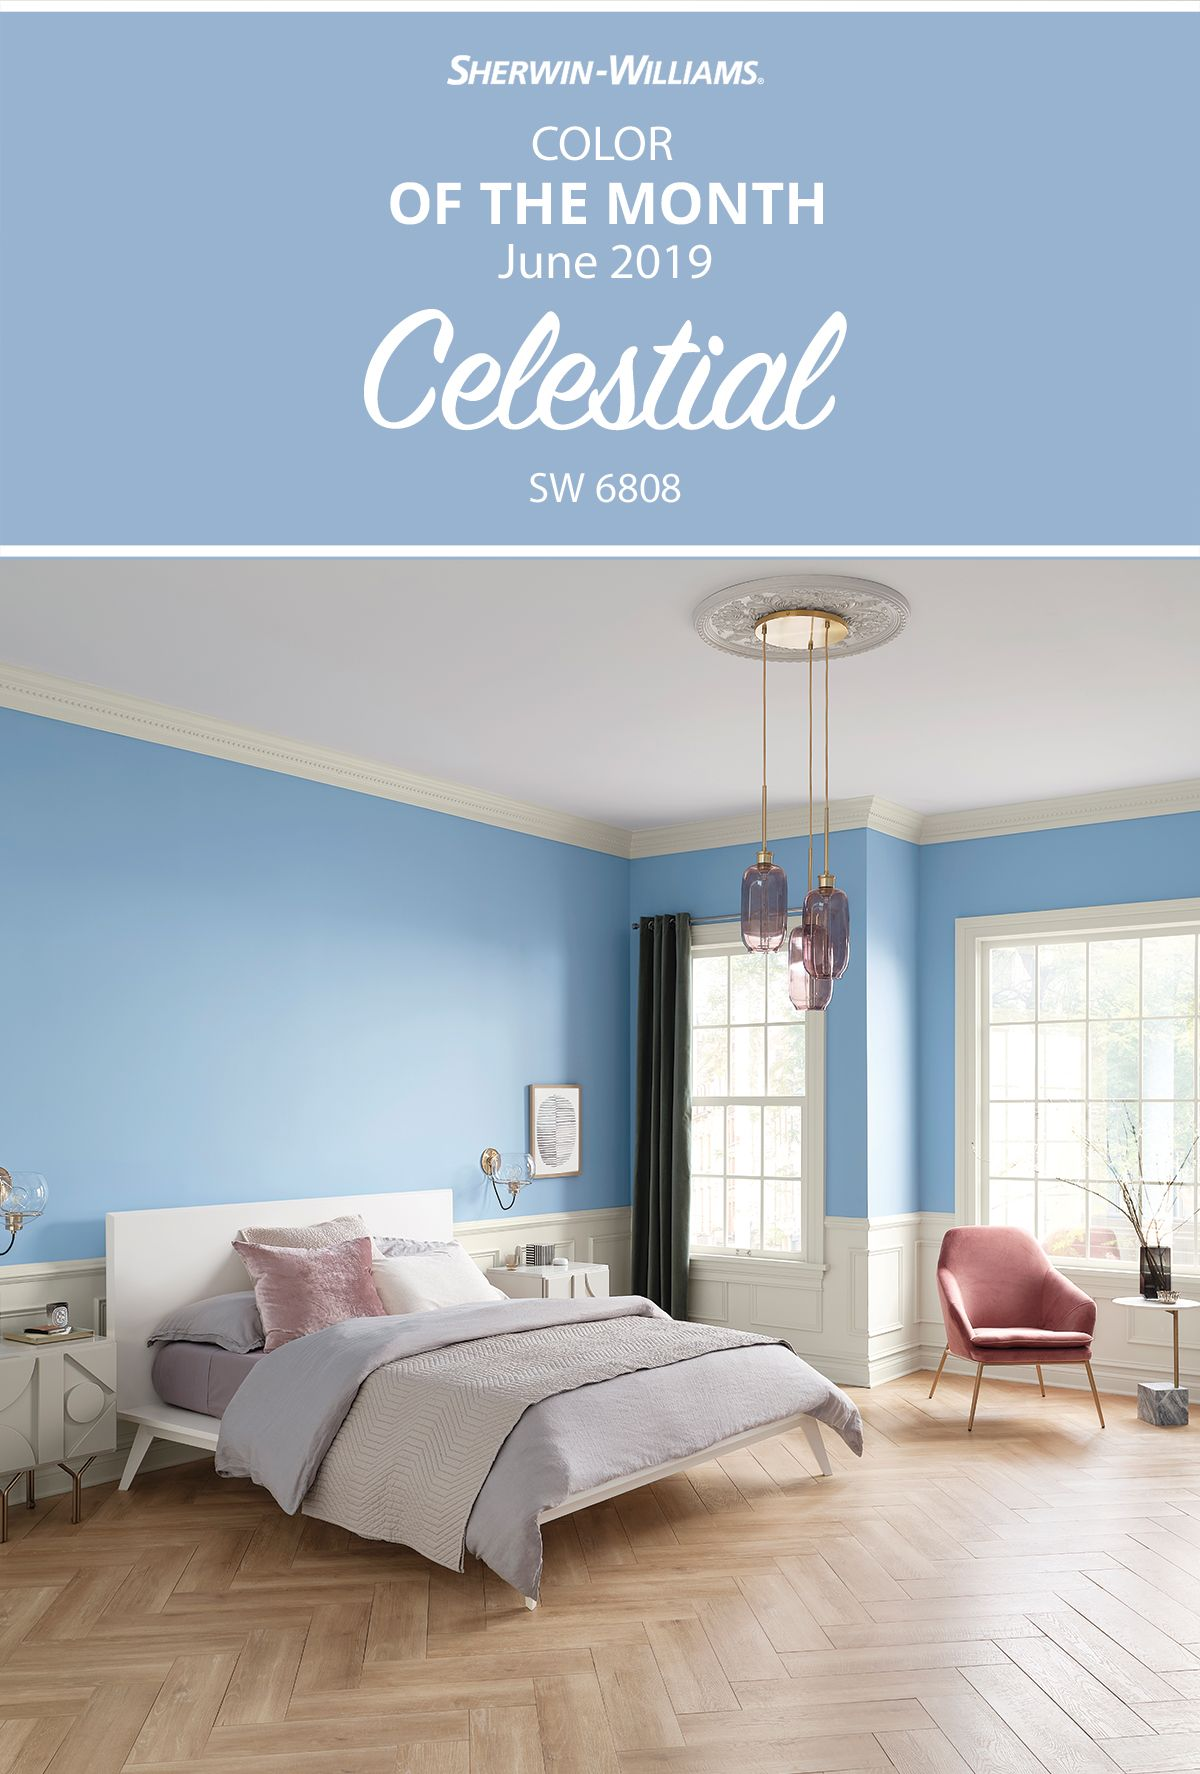 For Your Next Diy Bedroom Paint Project Shoot For The Stars With The Sherwin Williams Color Of The Mont Blue Room Paint Bedroom Wall Colors Blue Bedroom Paint